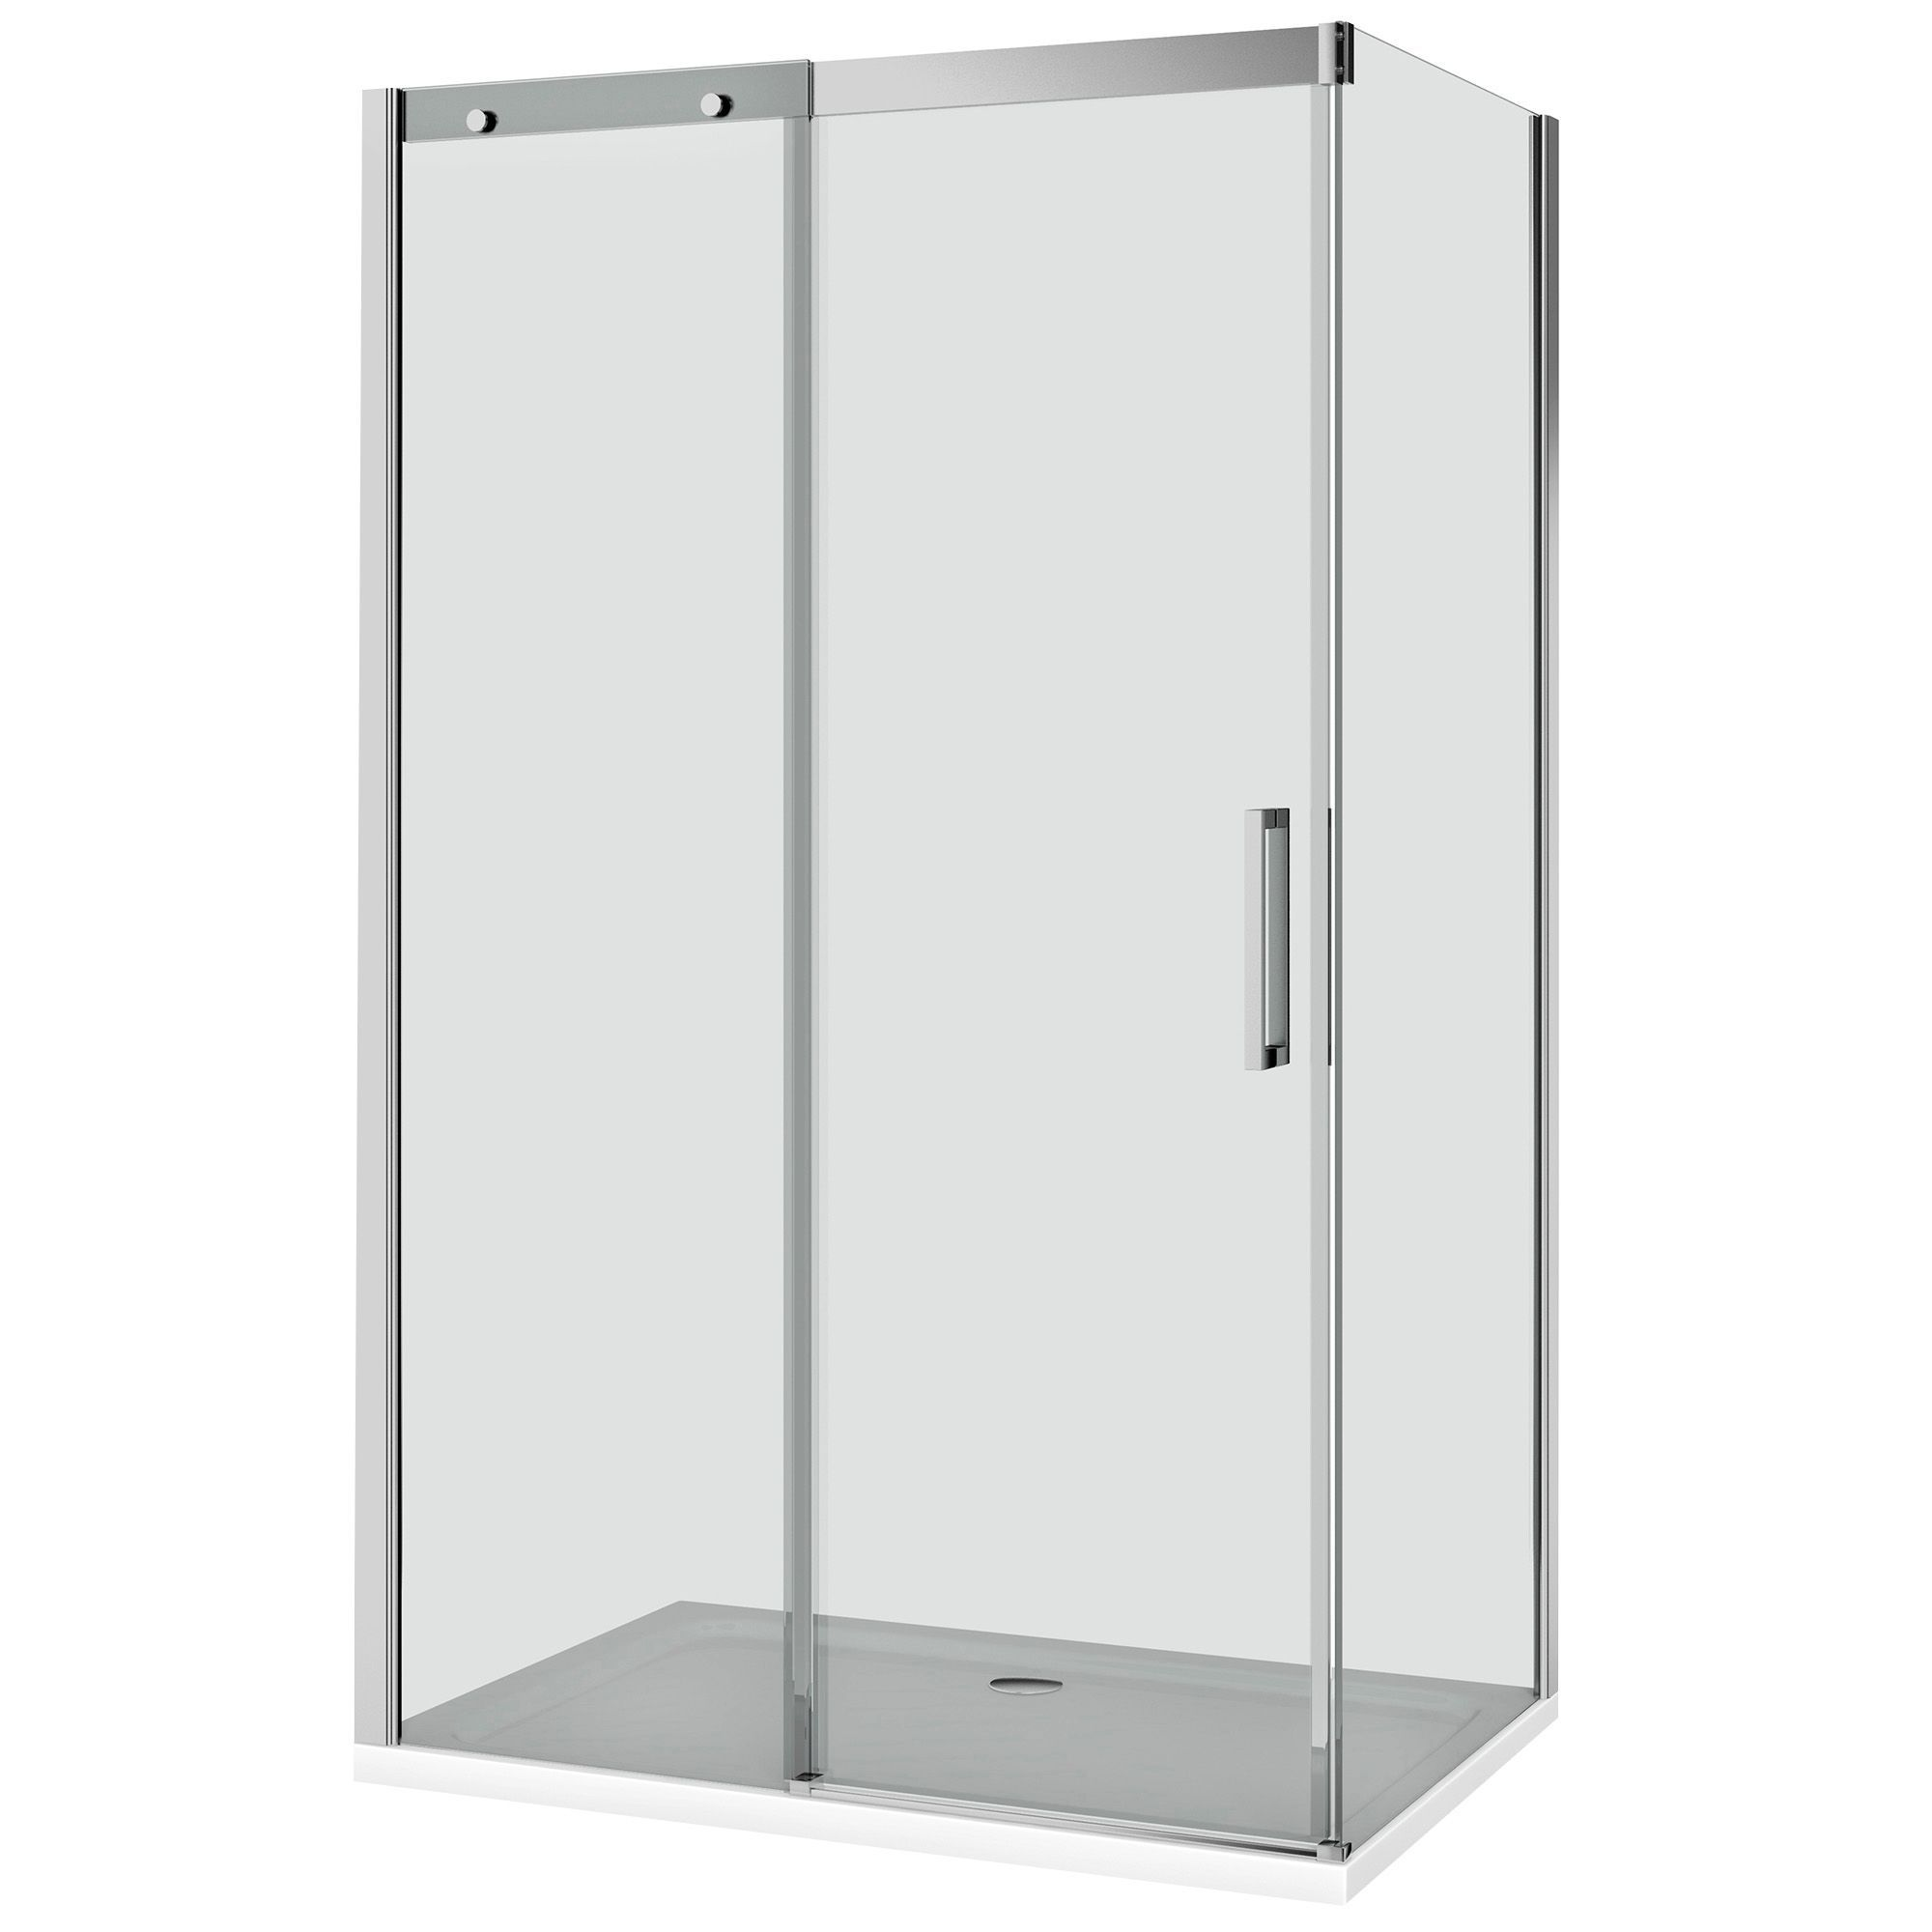 Cooke Lewis Carmony Polished Silver Effect Frame Rectangular Soft Close Shower Enclosure Shower Enclosure Rectangular Shower Enclosures Tall Cabinet Storage